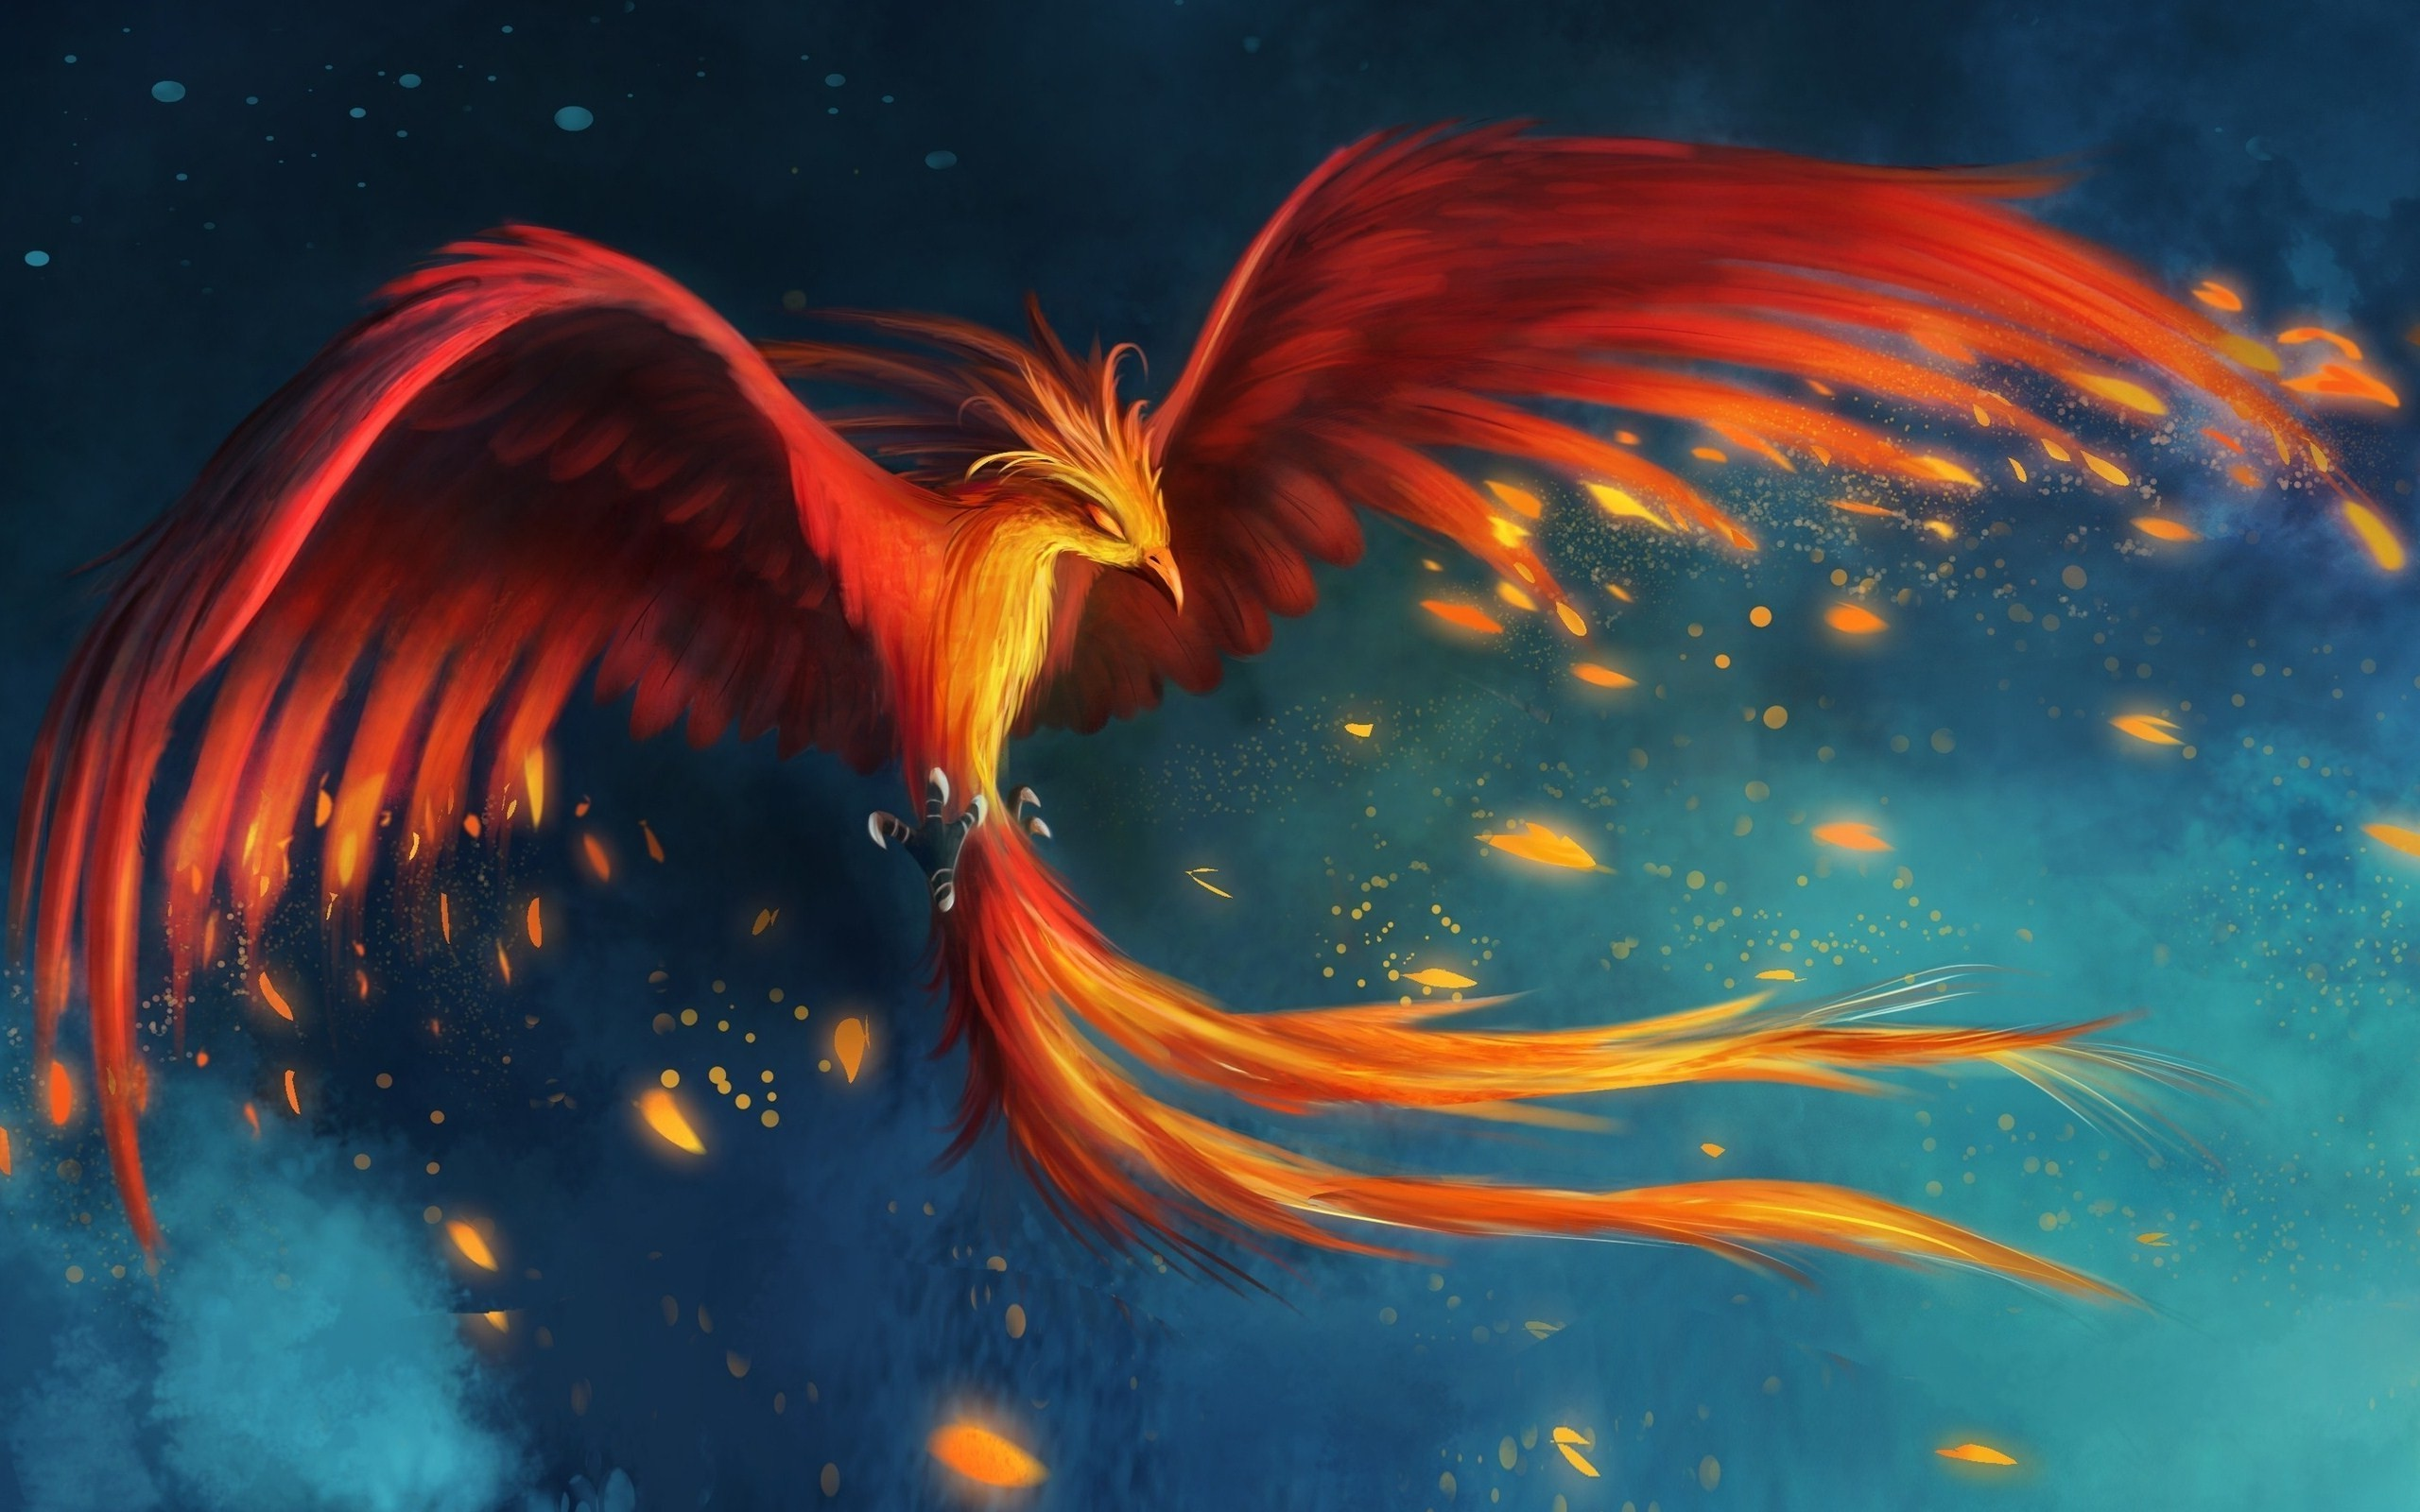 2560x1600 digital Art, Fantasy Art, Birds, Wings, Phoenix, Burning, Fire, Flying,  Tail Wallpapers HD / Desktop and Mobile Backgrounds